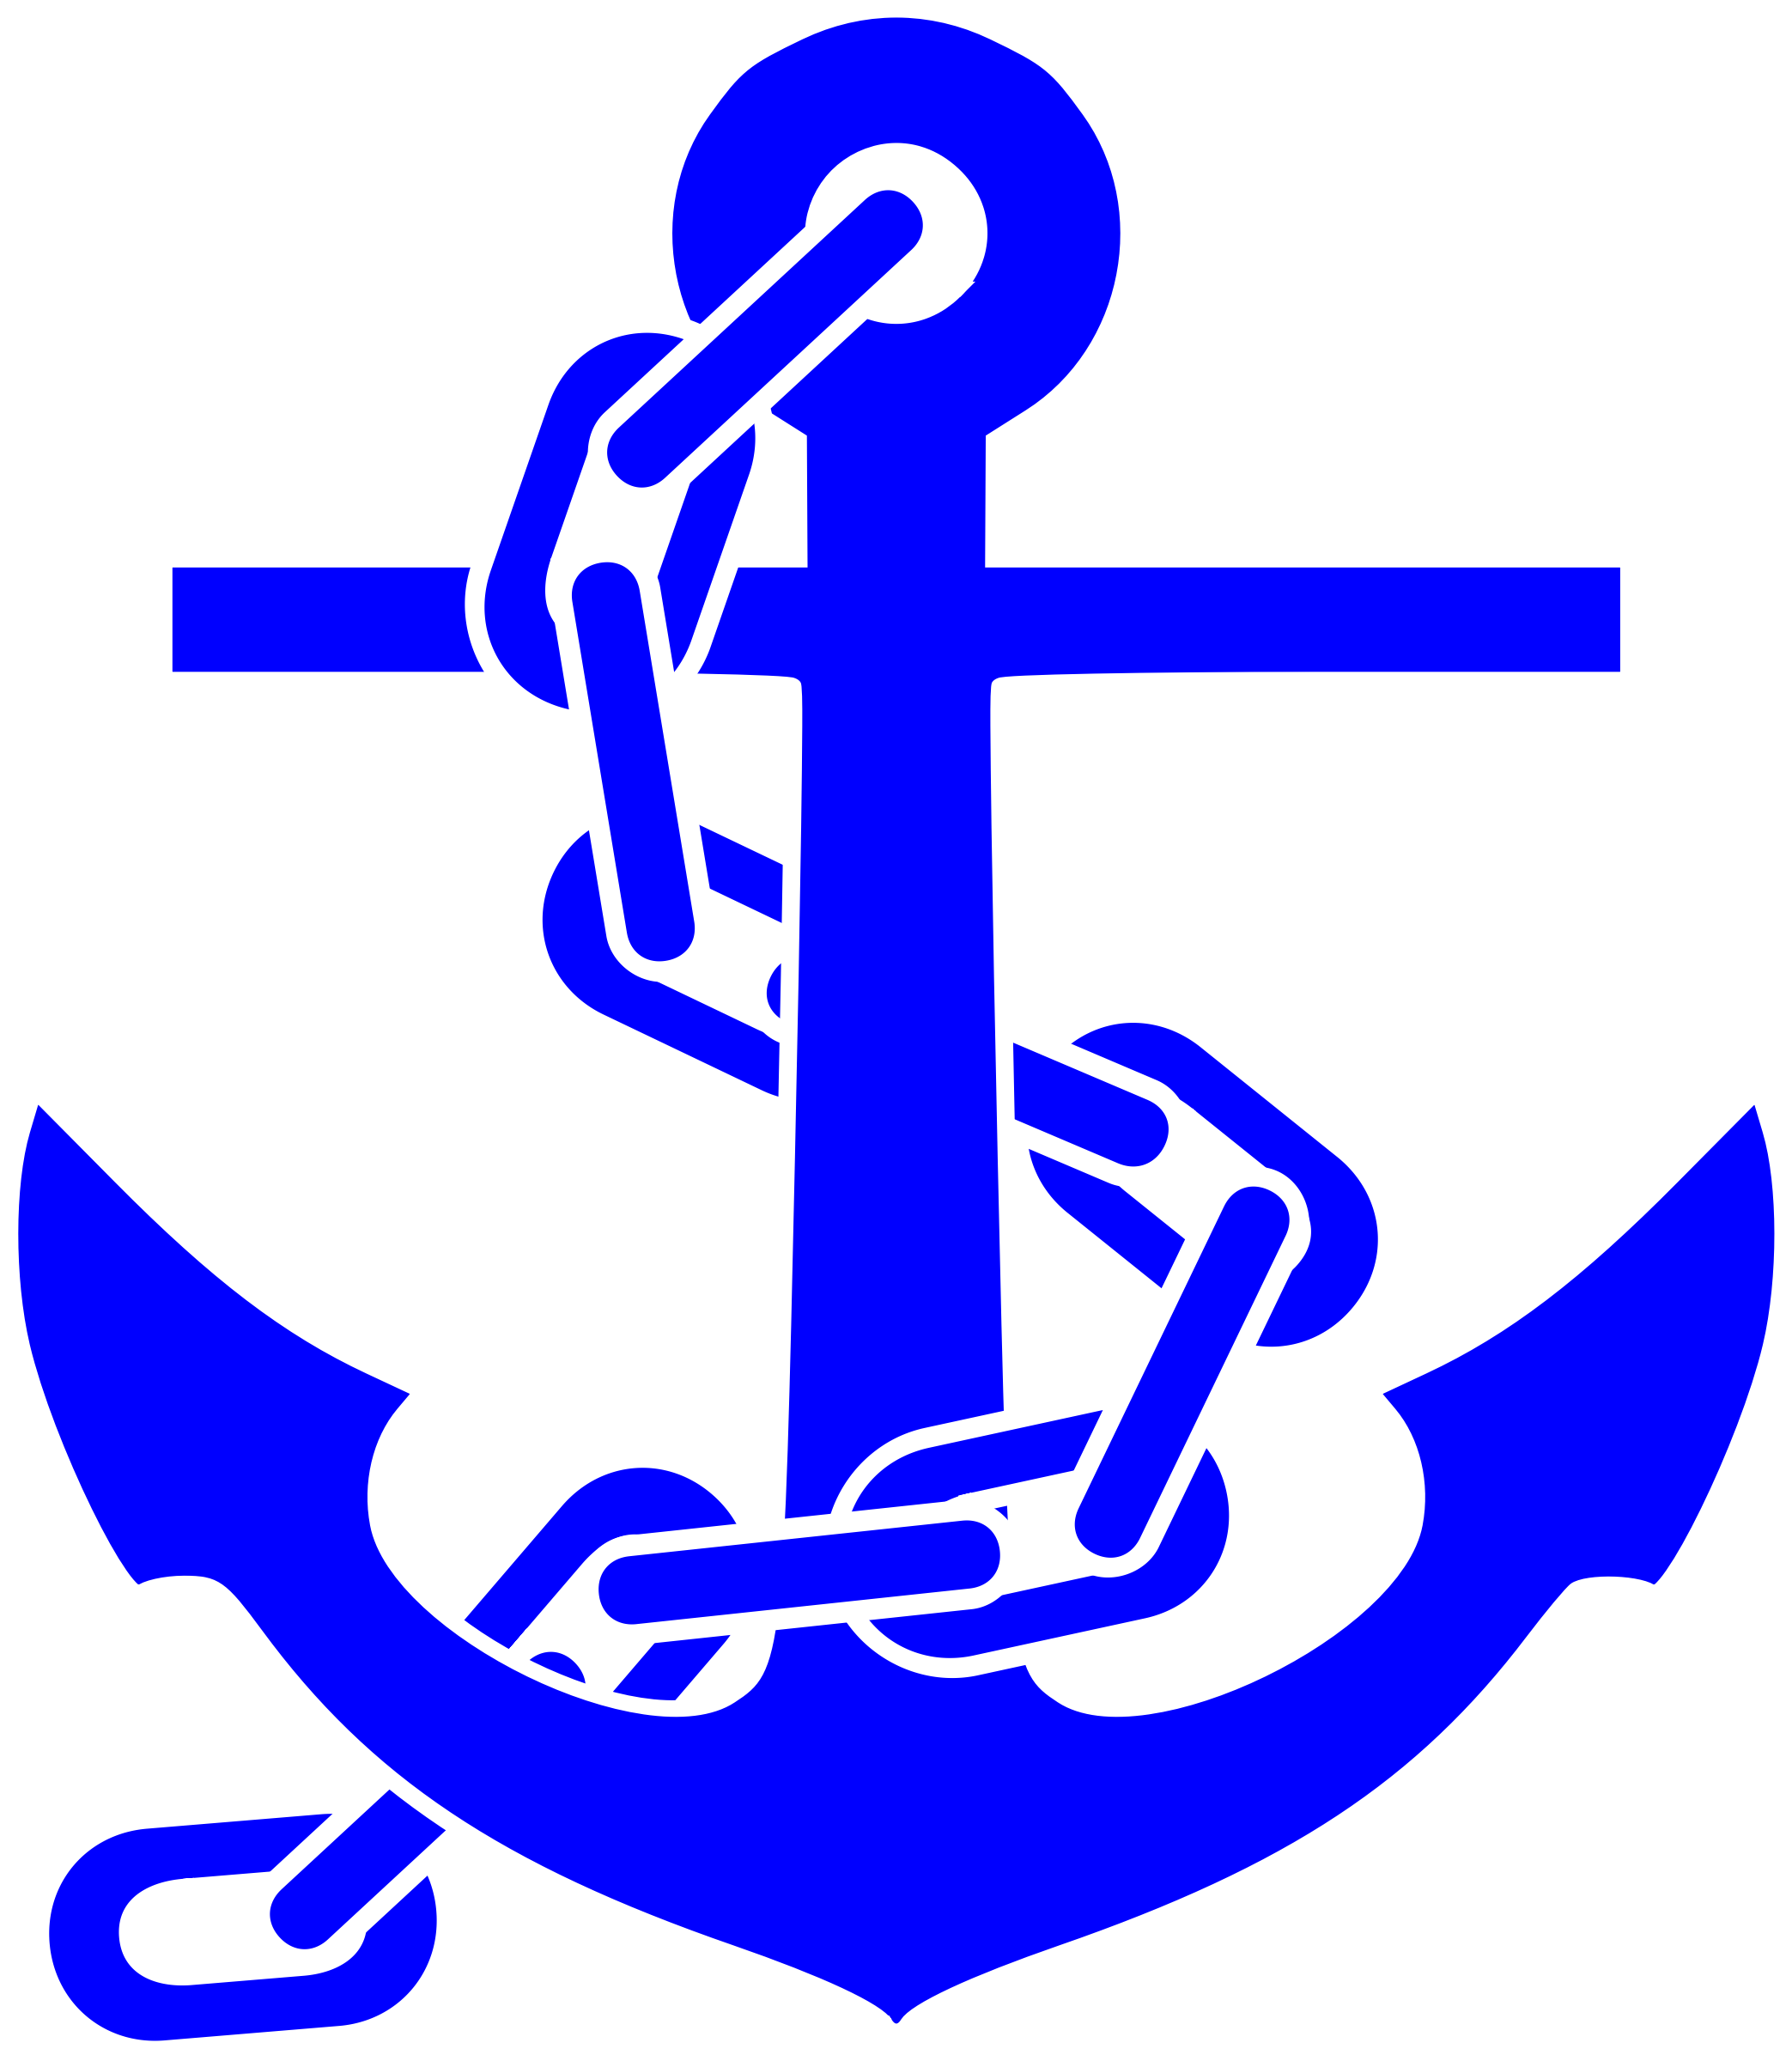 Clipart anchor basic. Fouled big image png